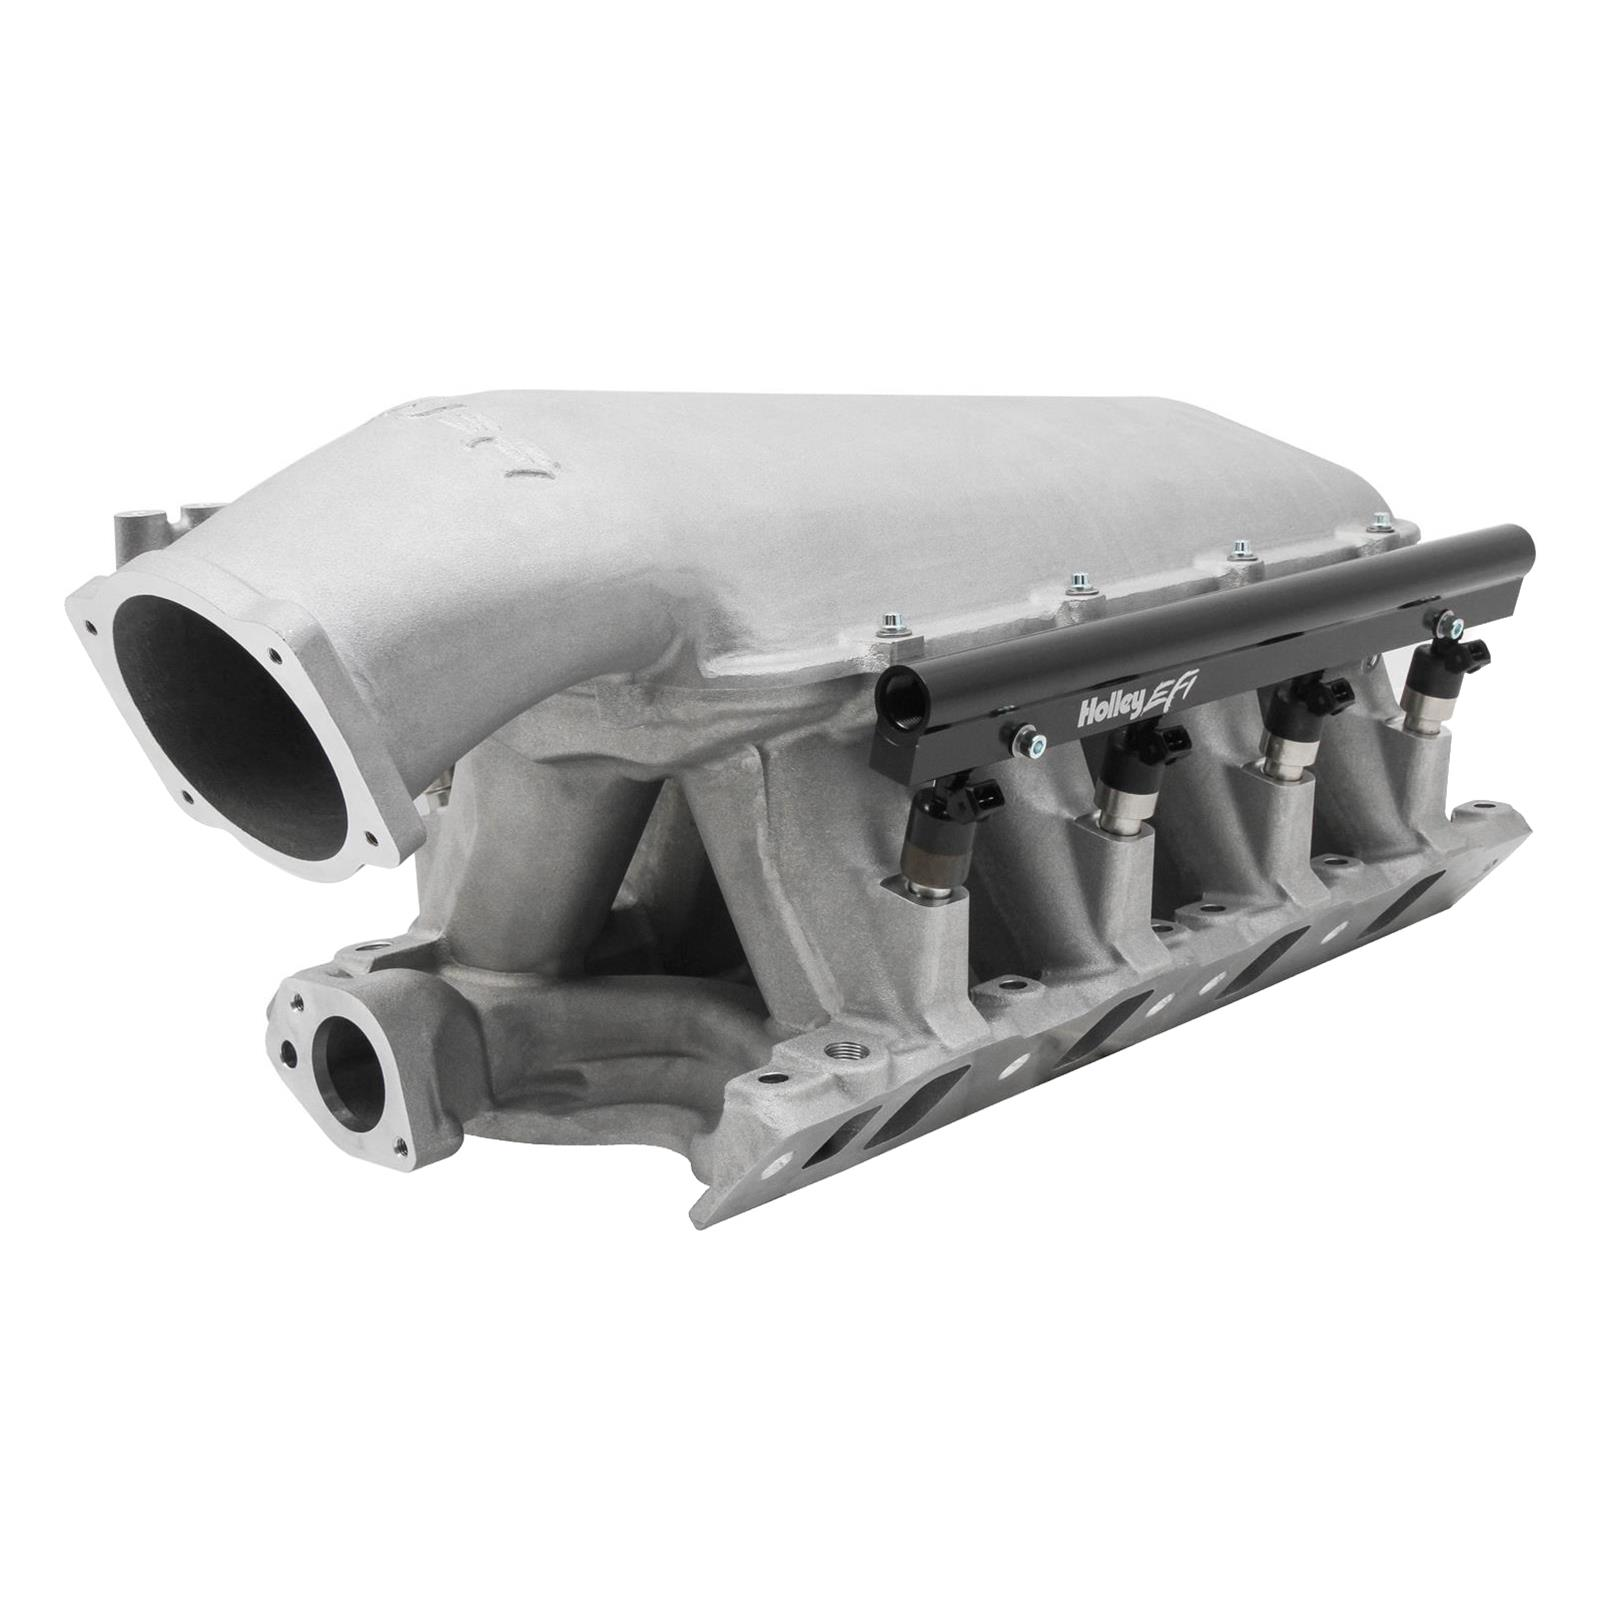 hight resolution of details about holley 351w ford hi ram efi intake manifold 300 242